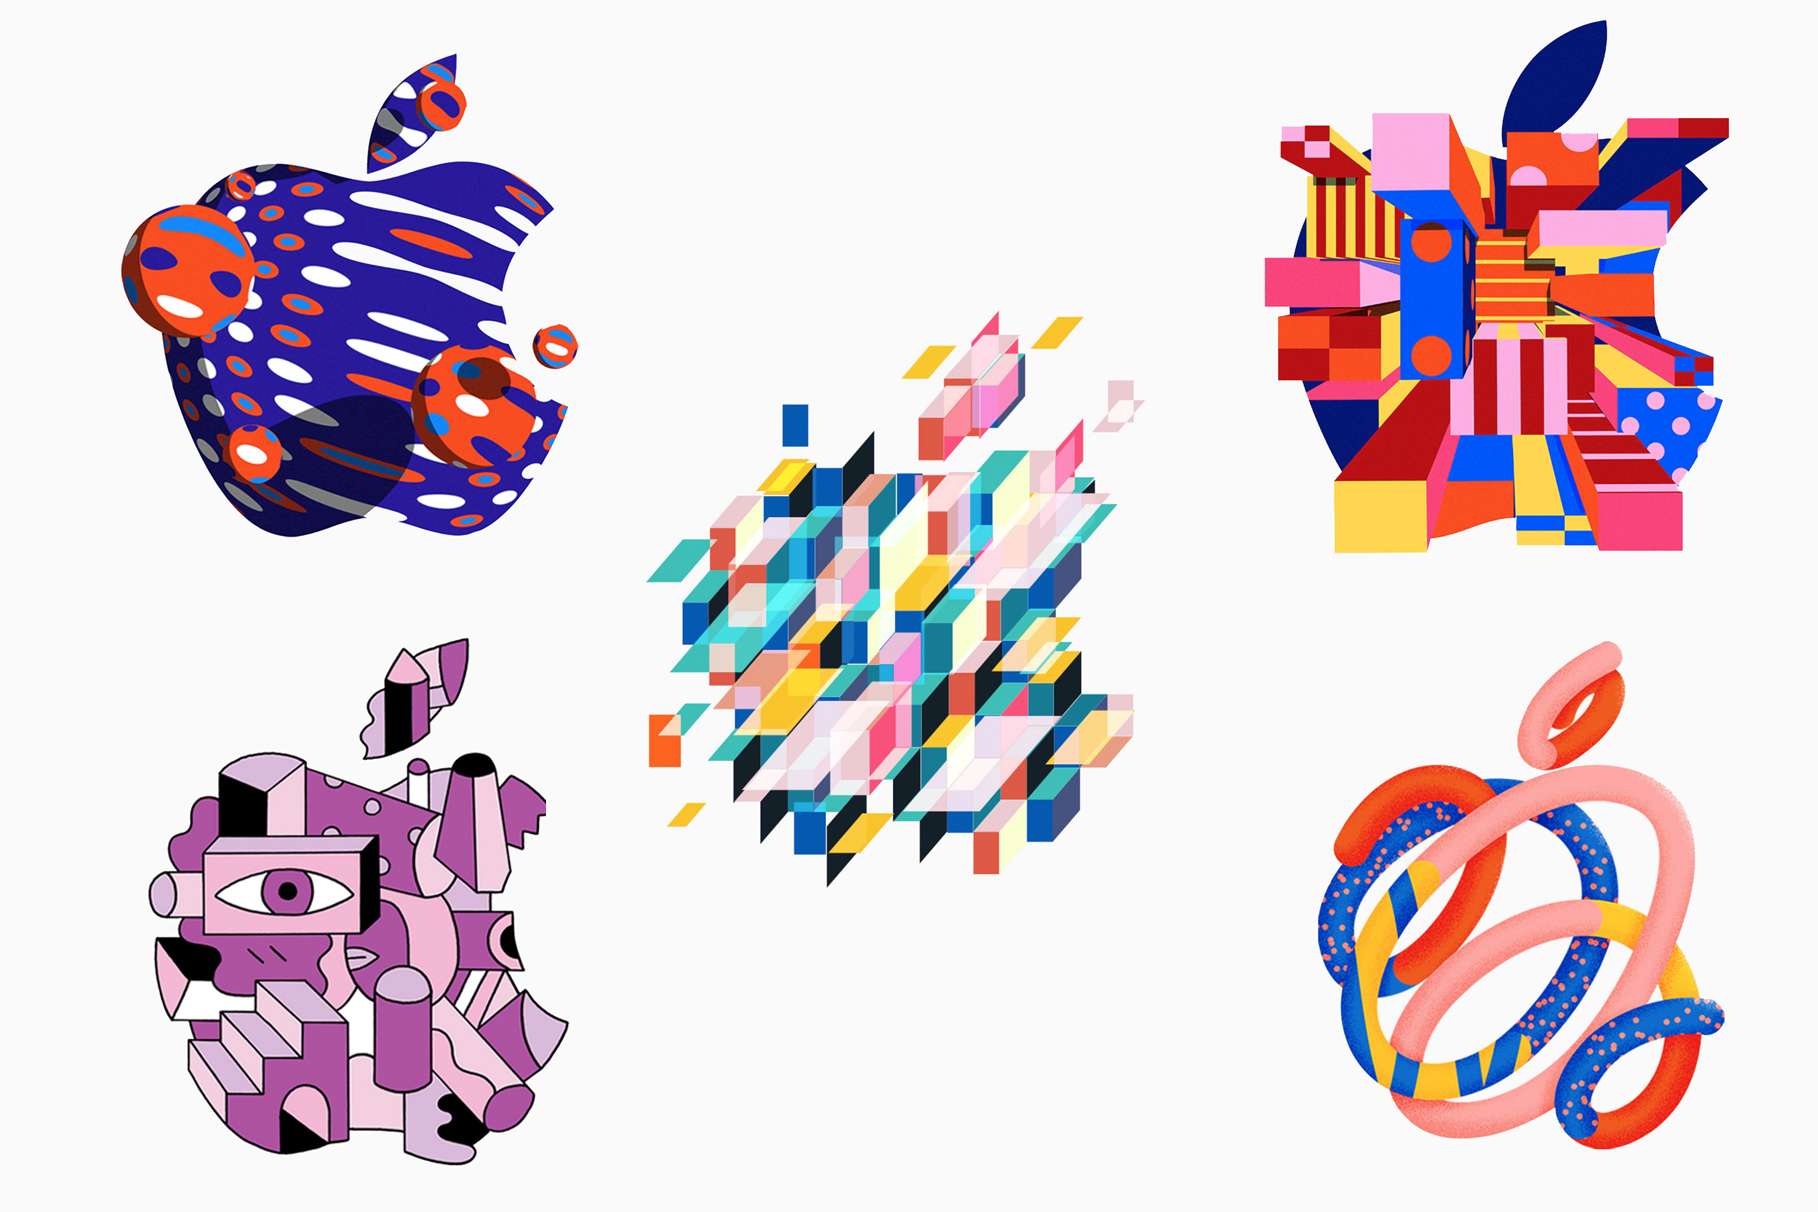 Apple unleashed a logo extravaganza to announce its upcoming special event